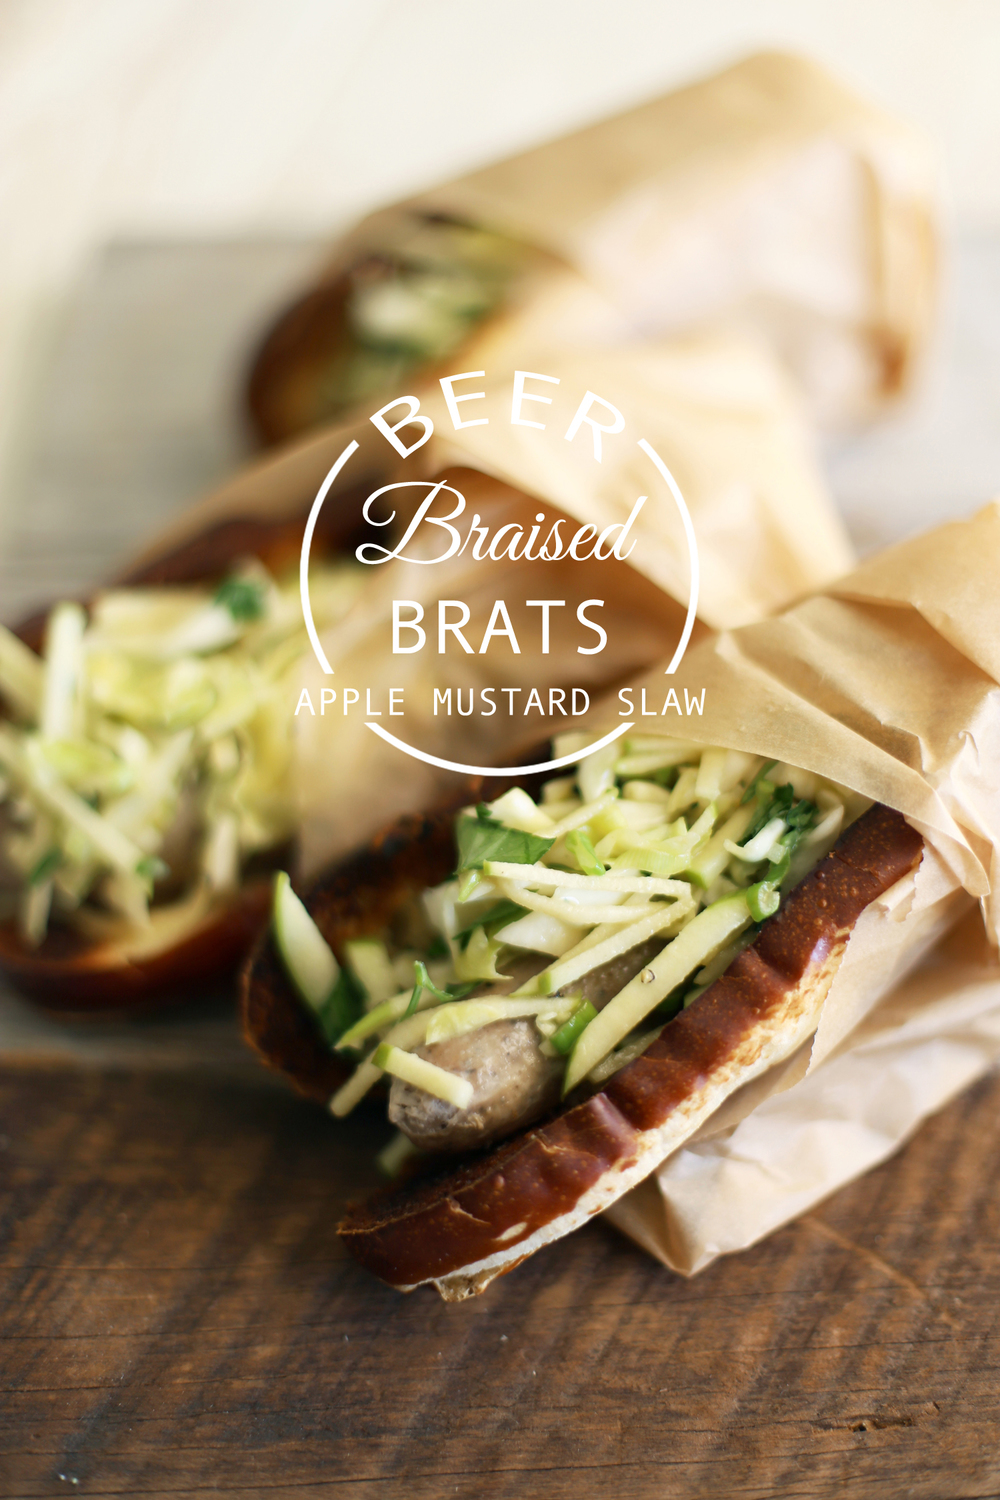 beer braised brats with apple mustard slaw